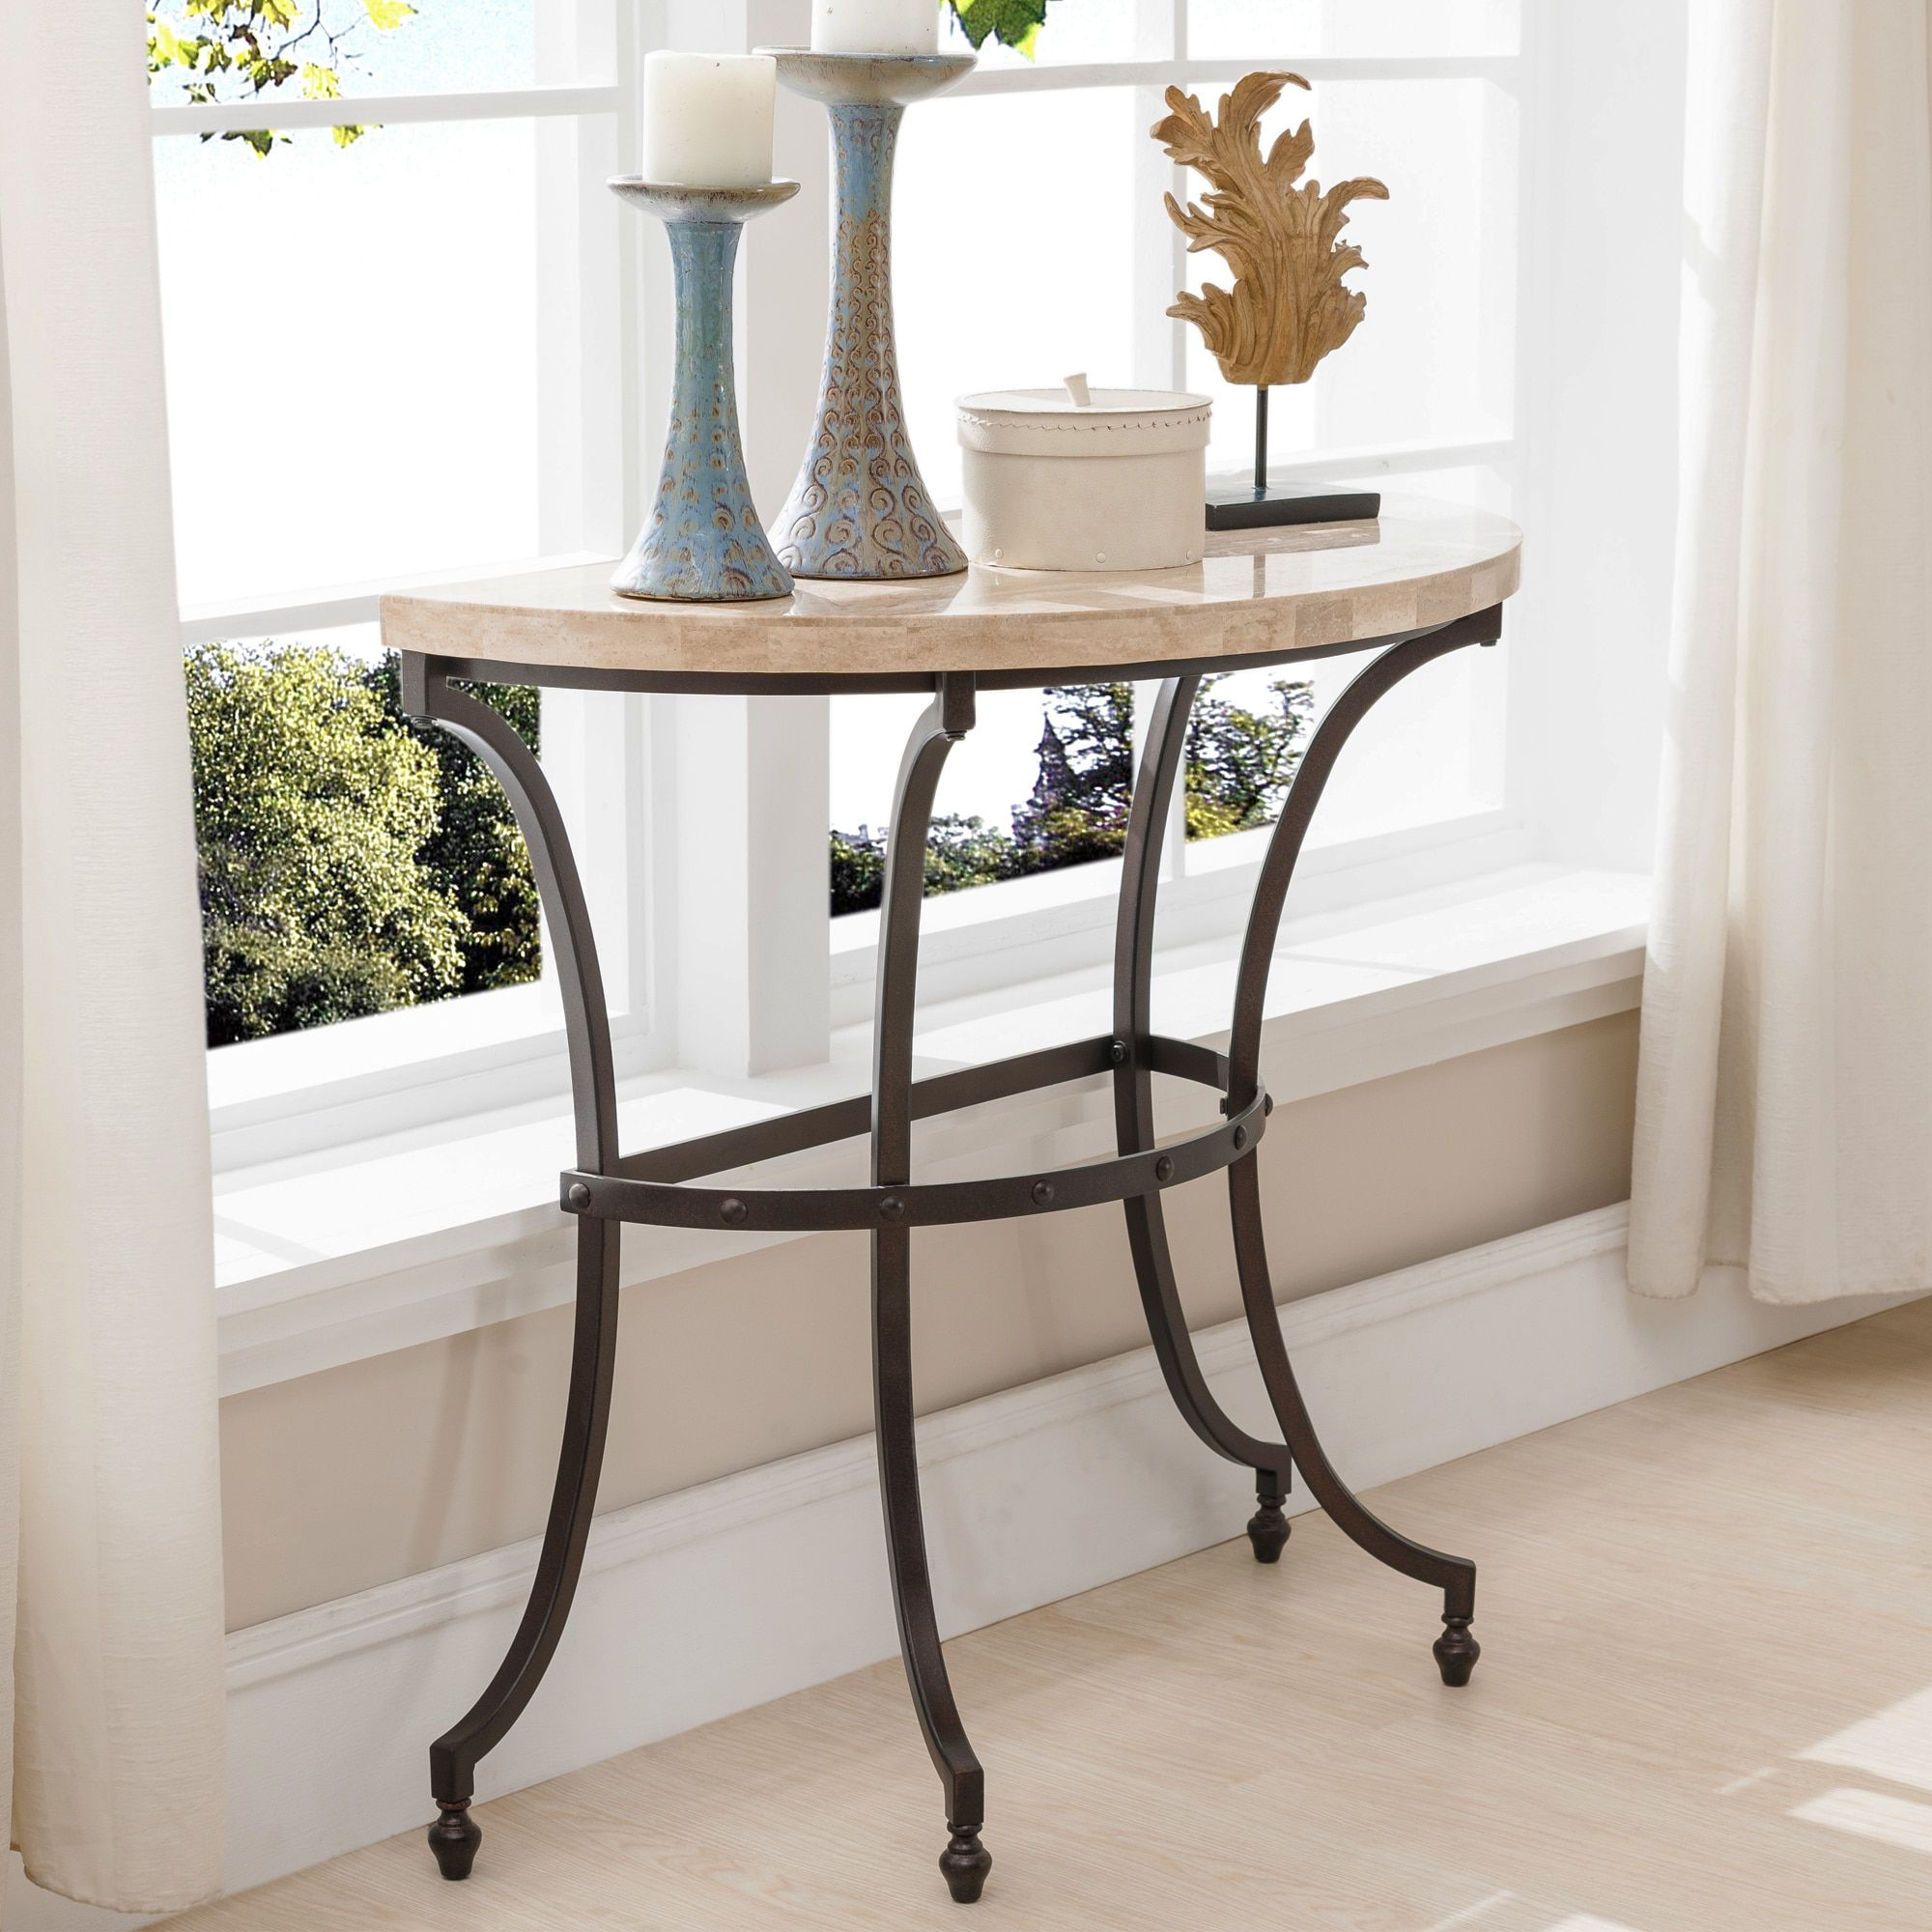 Kd furnishings demilune travertine stone top console table with kd furnishings demilune travertine stone top console table with rubbed bronze metal base geotapseo Gallery